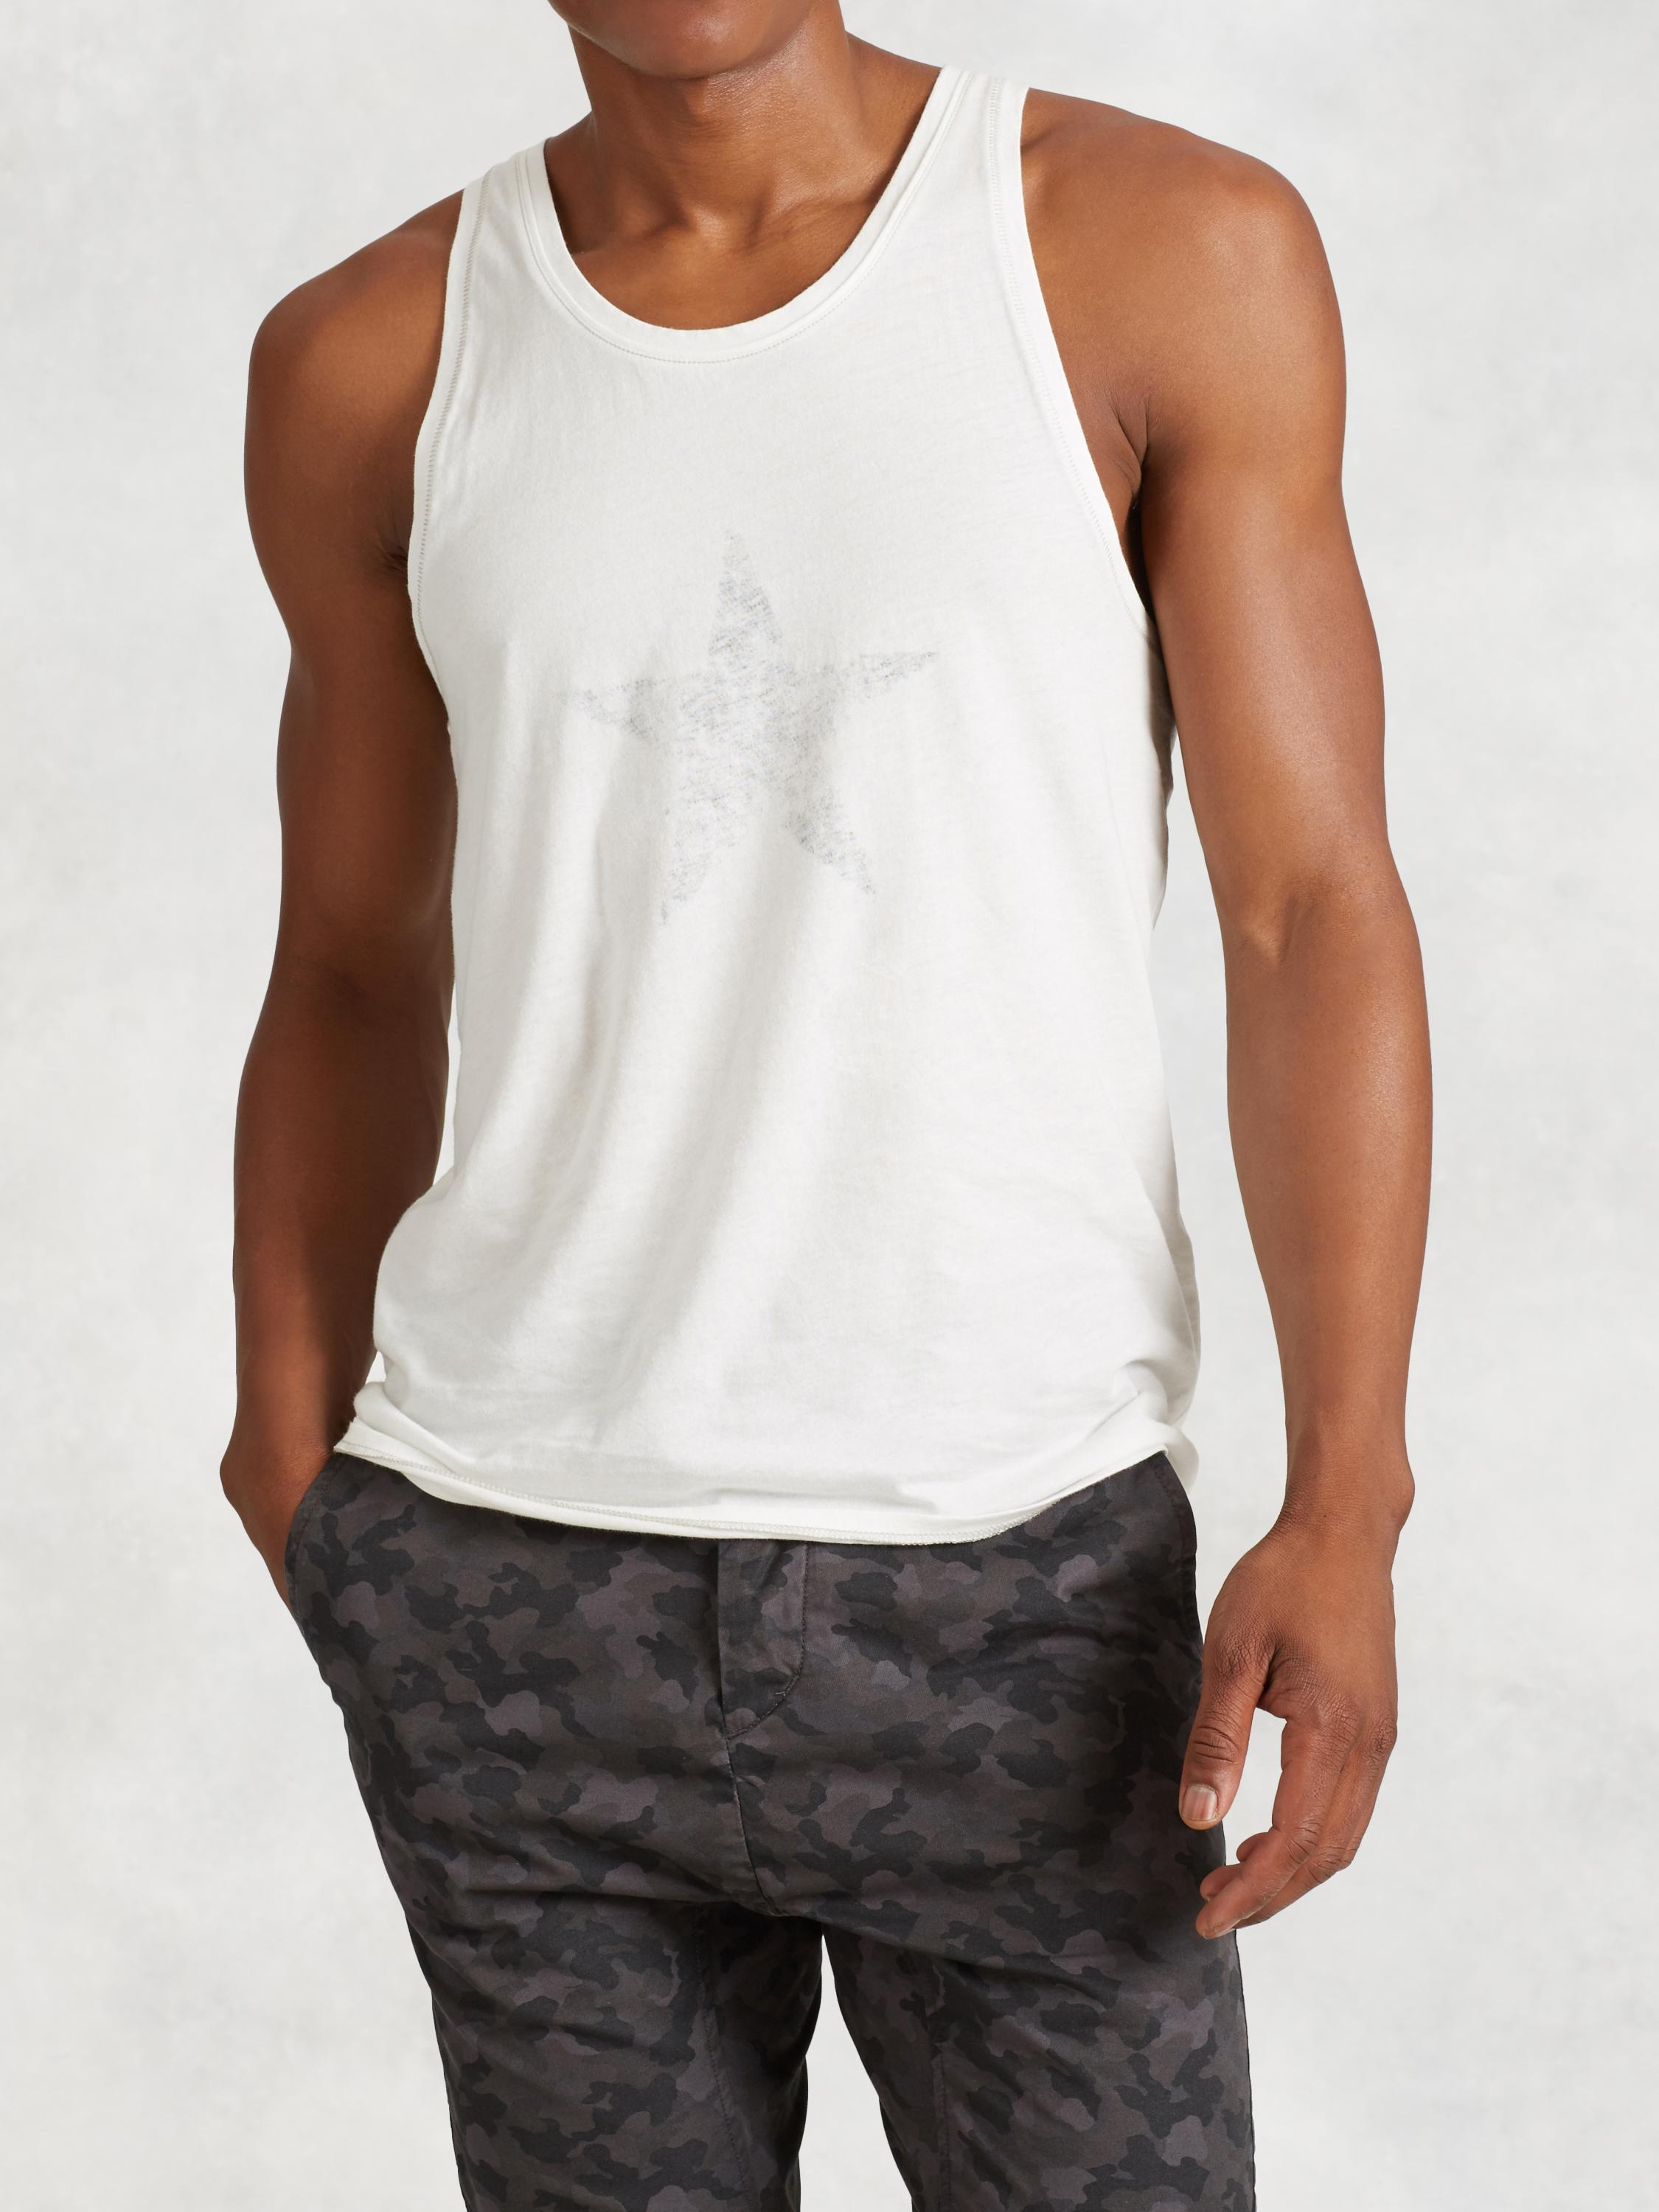 Faded Star Graphic Tank